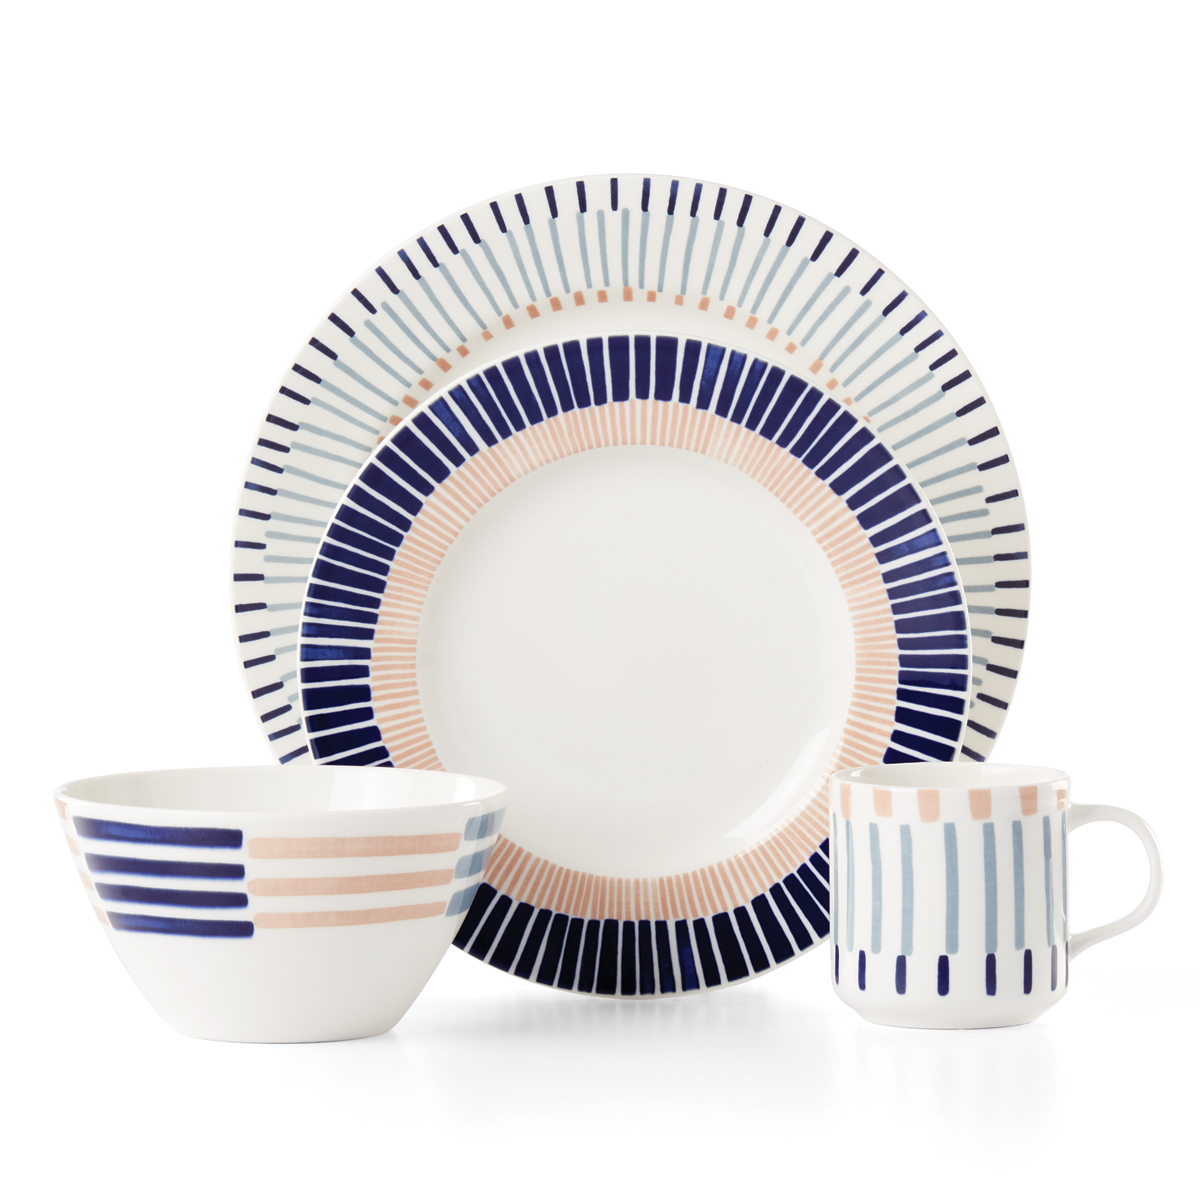 Kate Spade China by Lenox, Brook Lane 4 Piece Place Setting